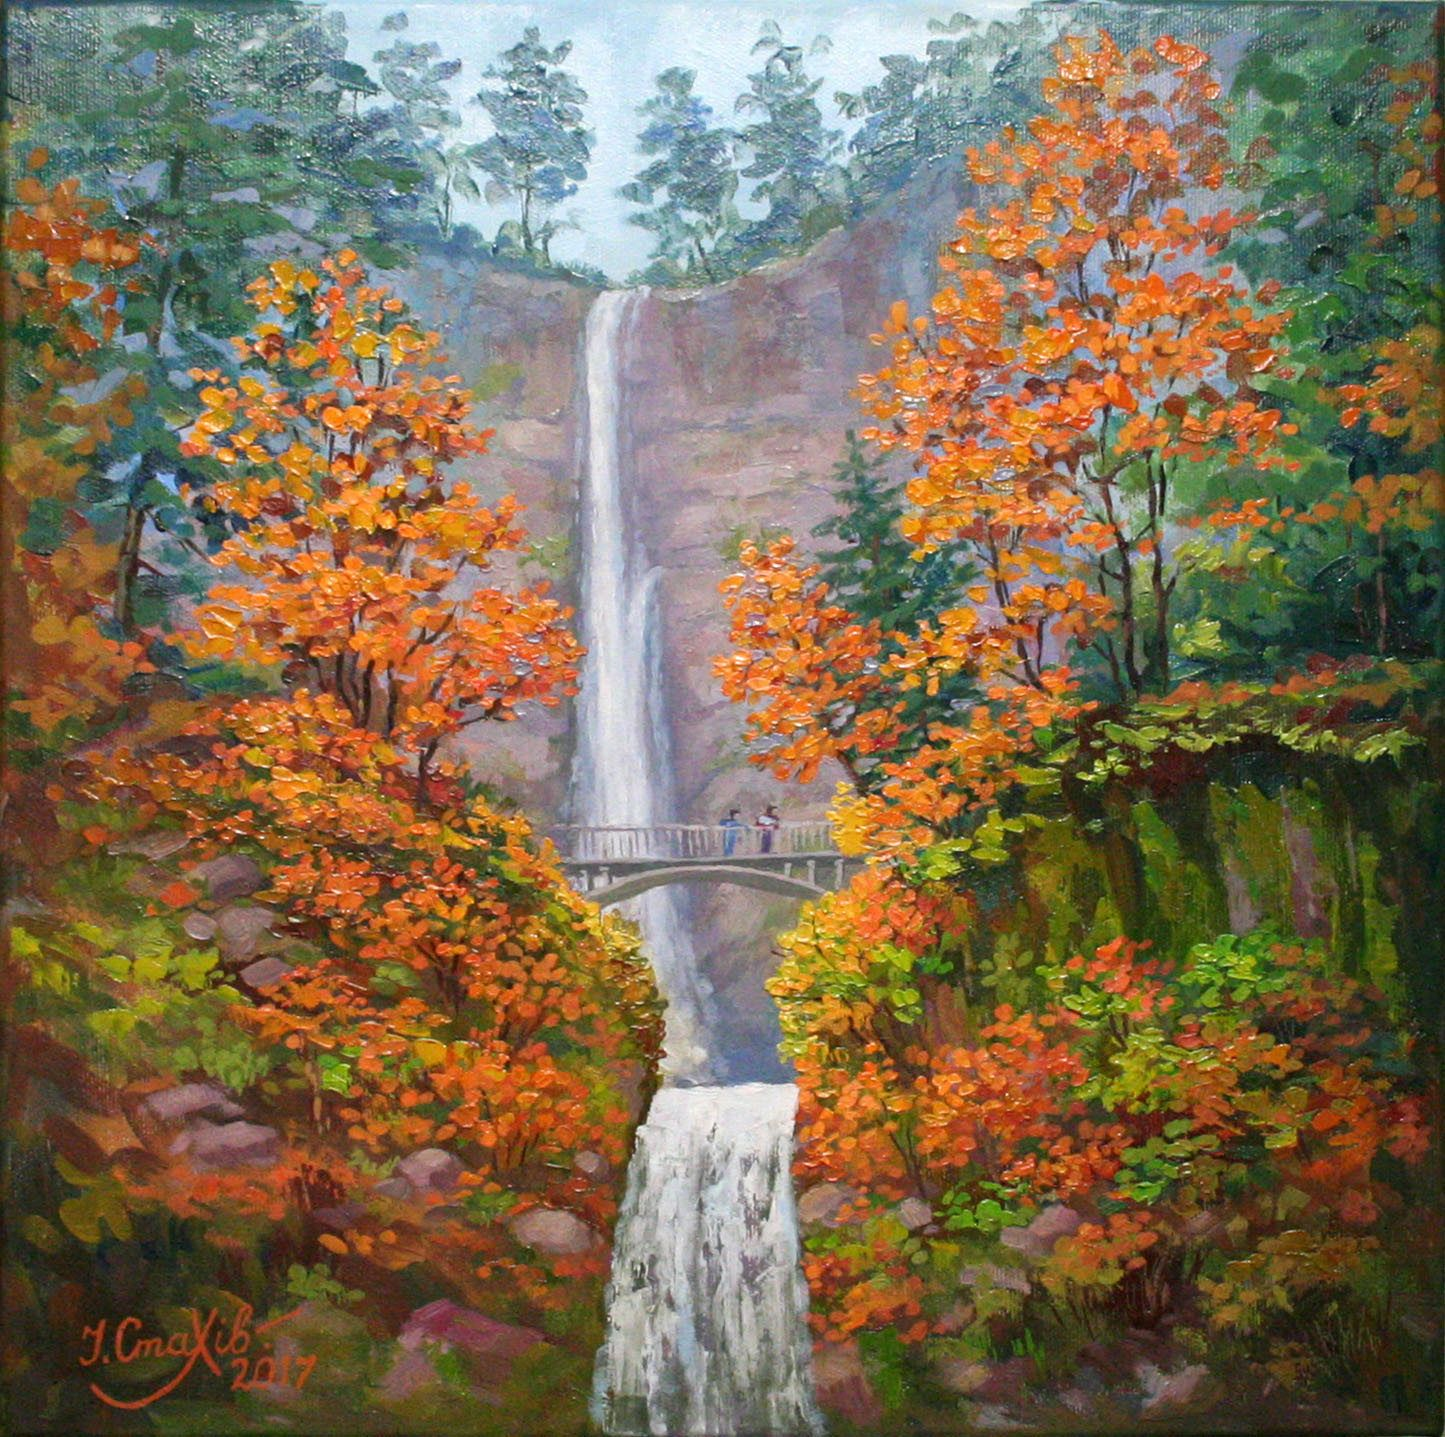 Landscape Painting On Canvas Golden Autumn Wall Art Waterfall Painting Fall Trees Nature Wall Deco Canvas Painting Landscape Landscape Wall Art Autumn Painting